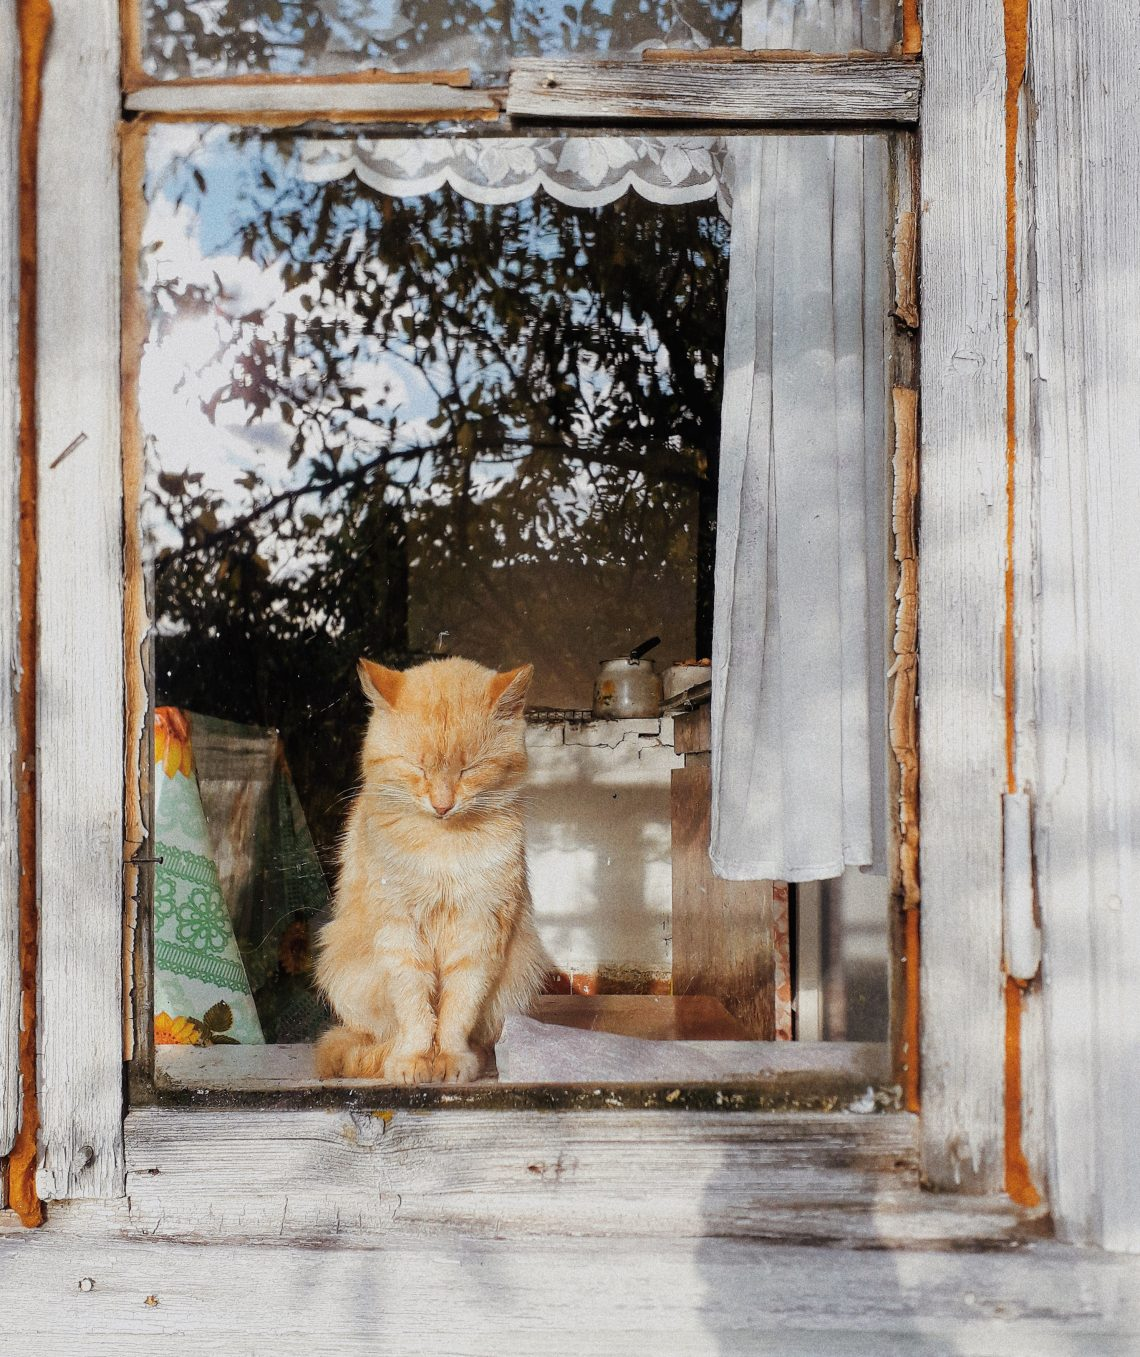 orange tabby cat inside closed glass window